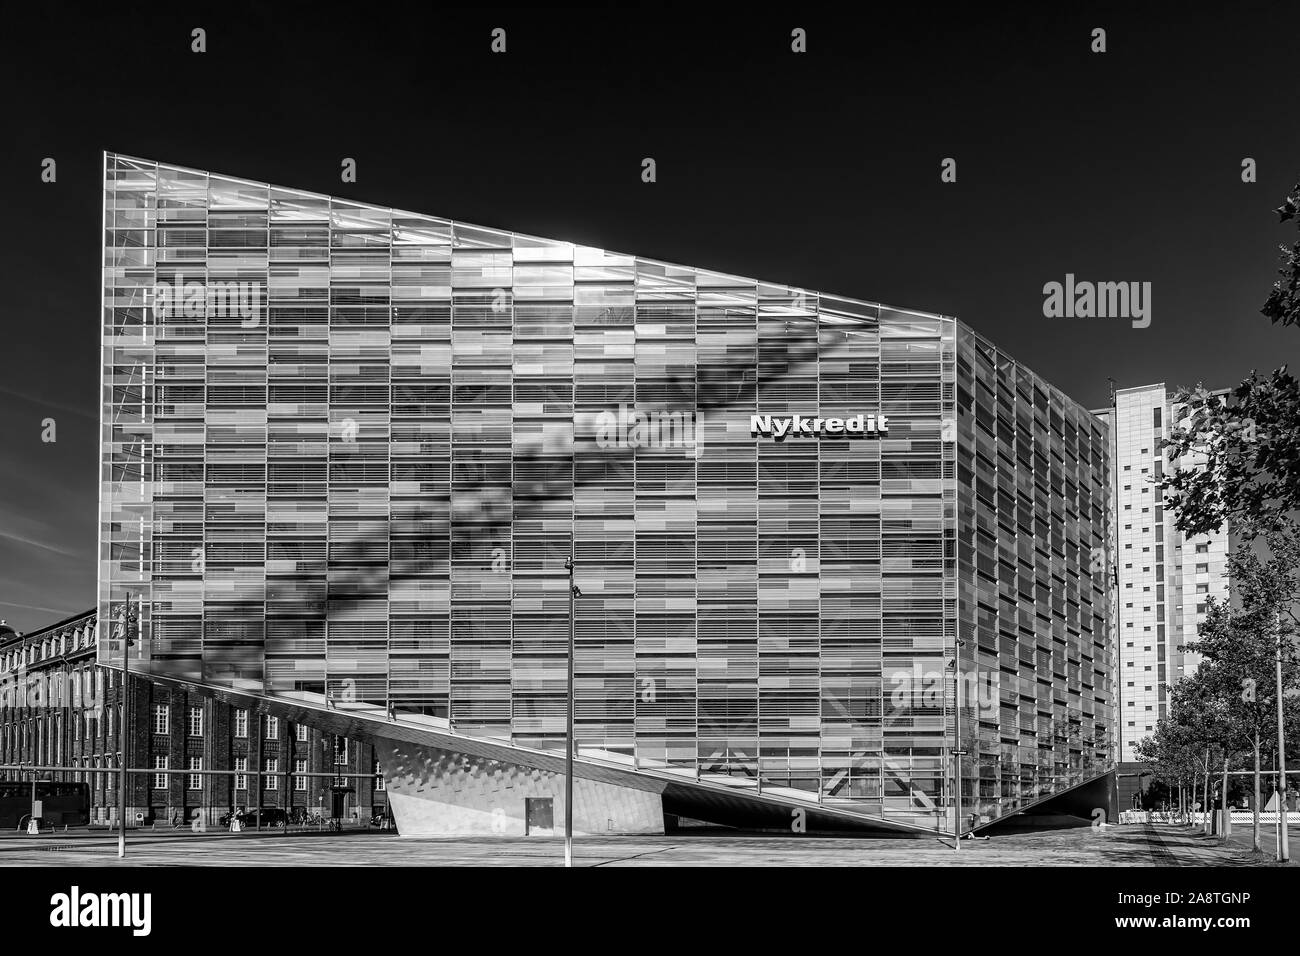 COPENHAGEN, DENMARK - SEPTEMBER 21, 2019: The Crystal is a free-standing, environmentally friendly extension of Nykredit headquarters at the Kalvebod Stock Photo